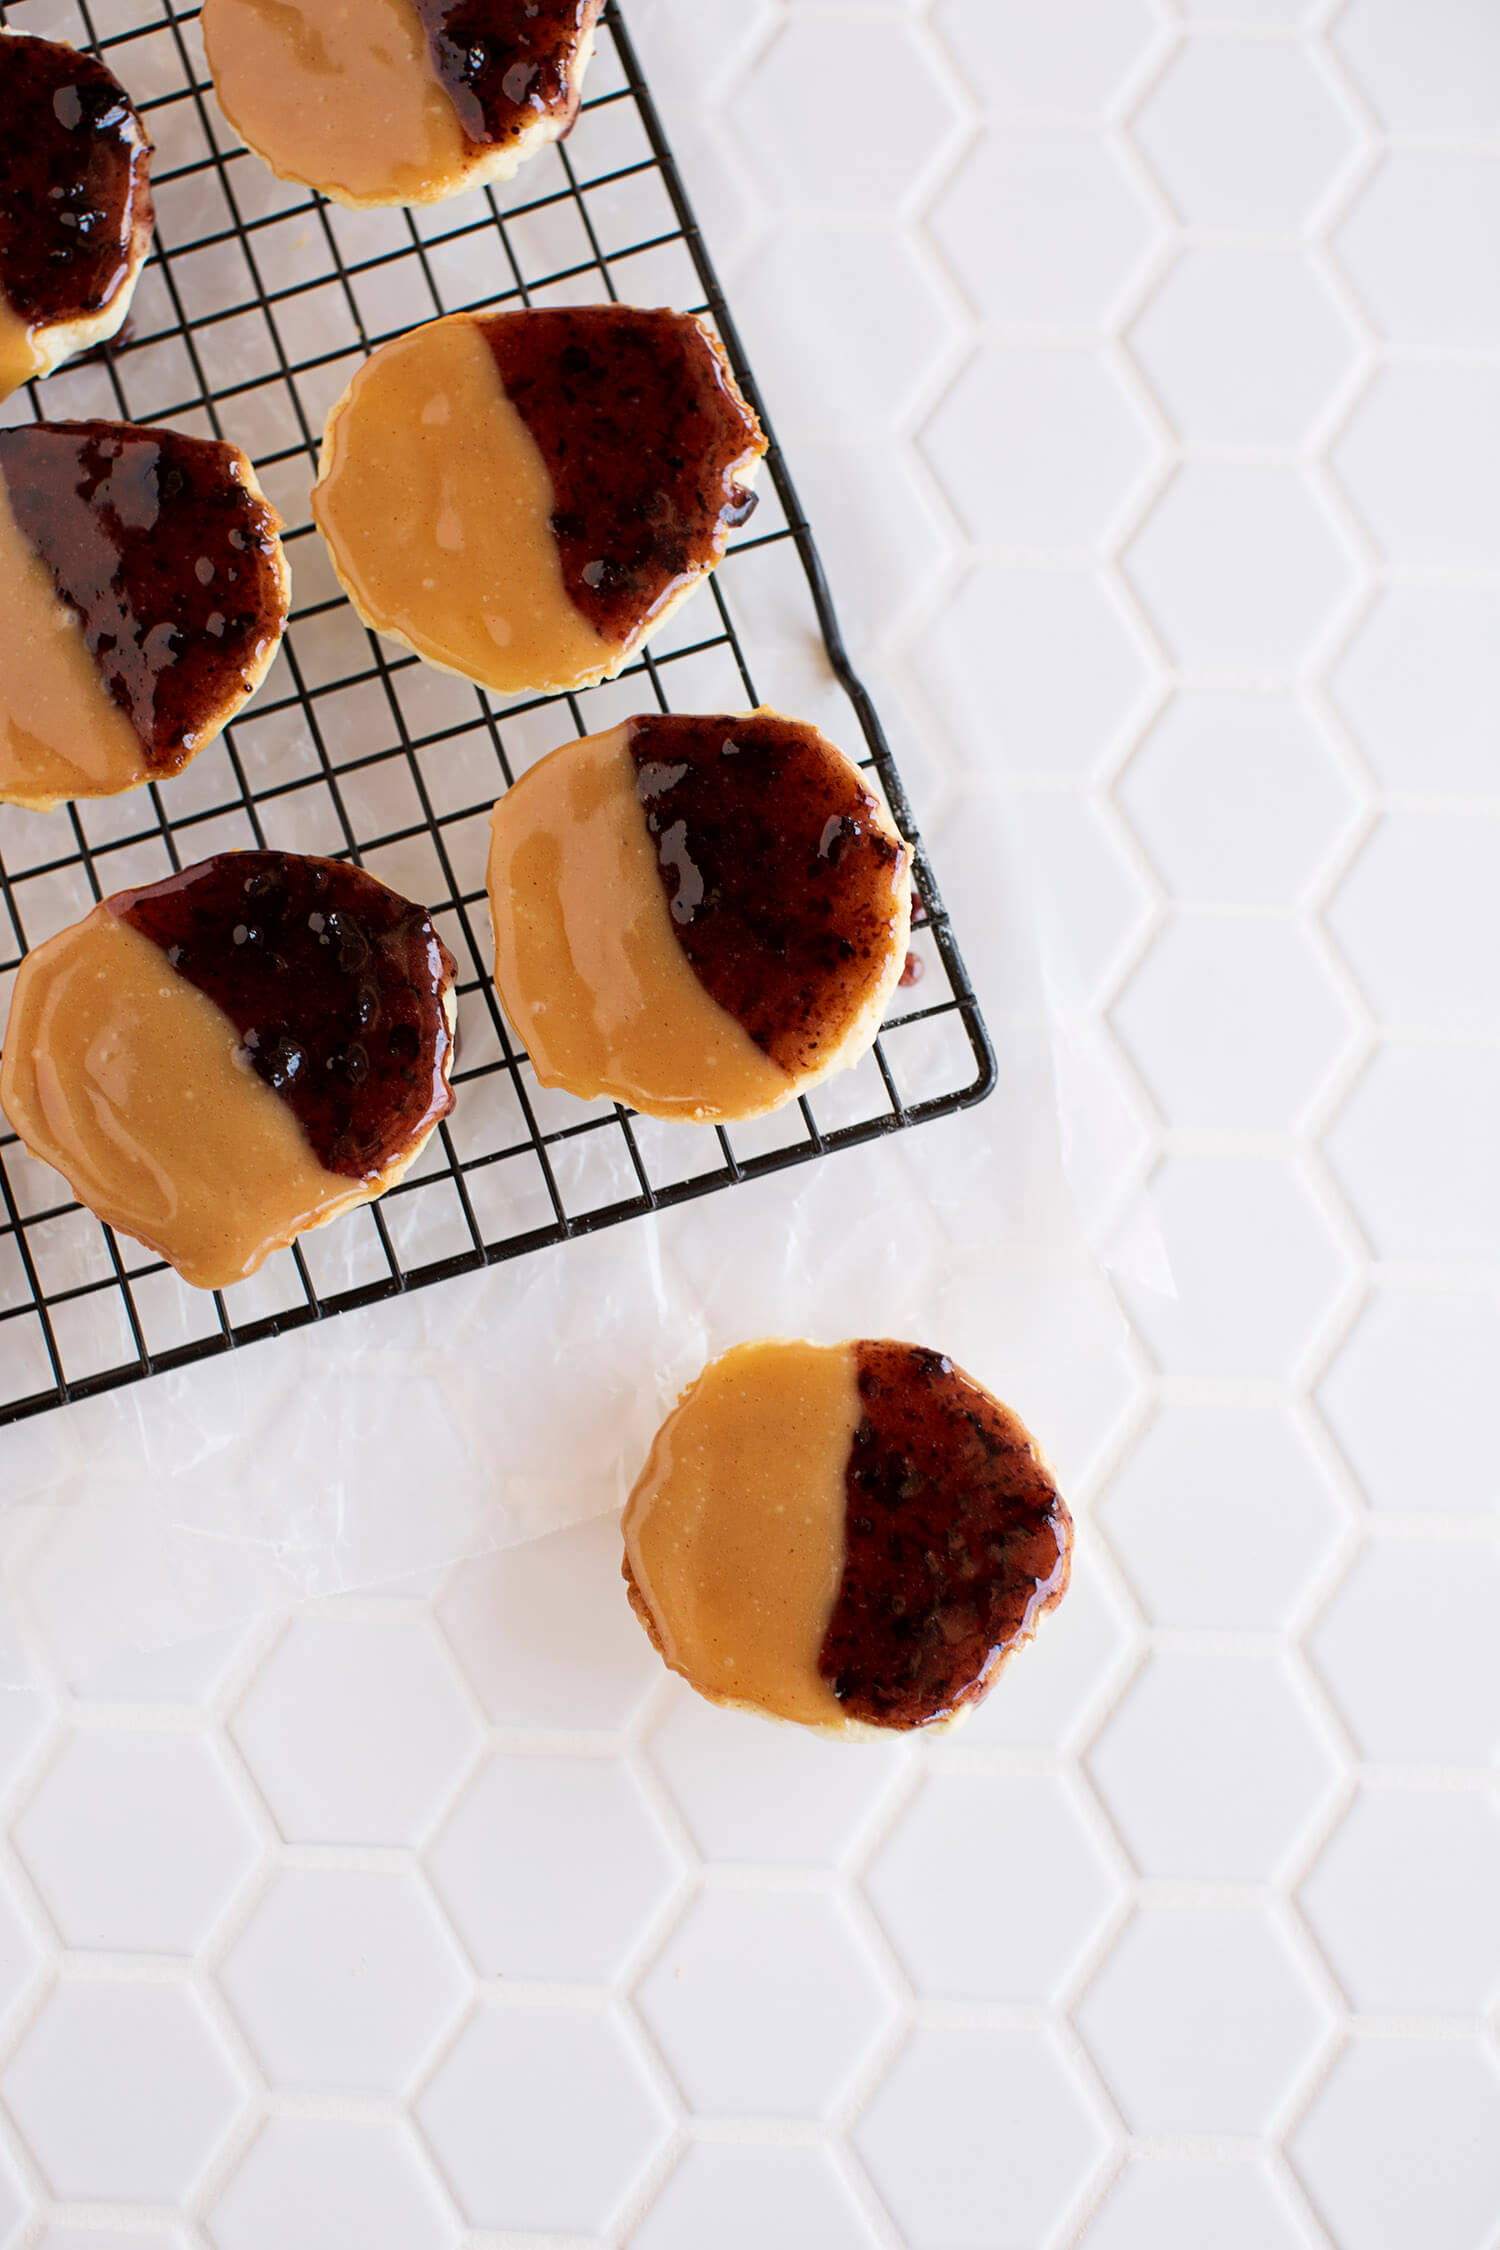 Peanut Butter & Jelly Cookies (via abeautifulmess.com)